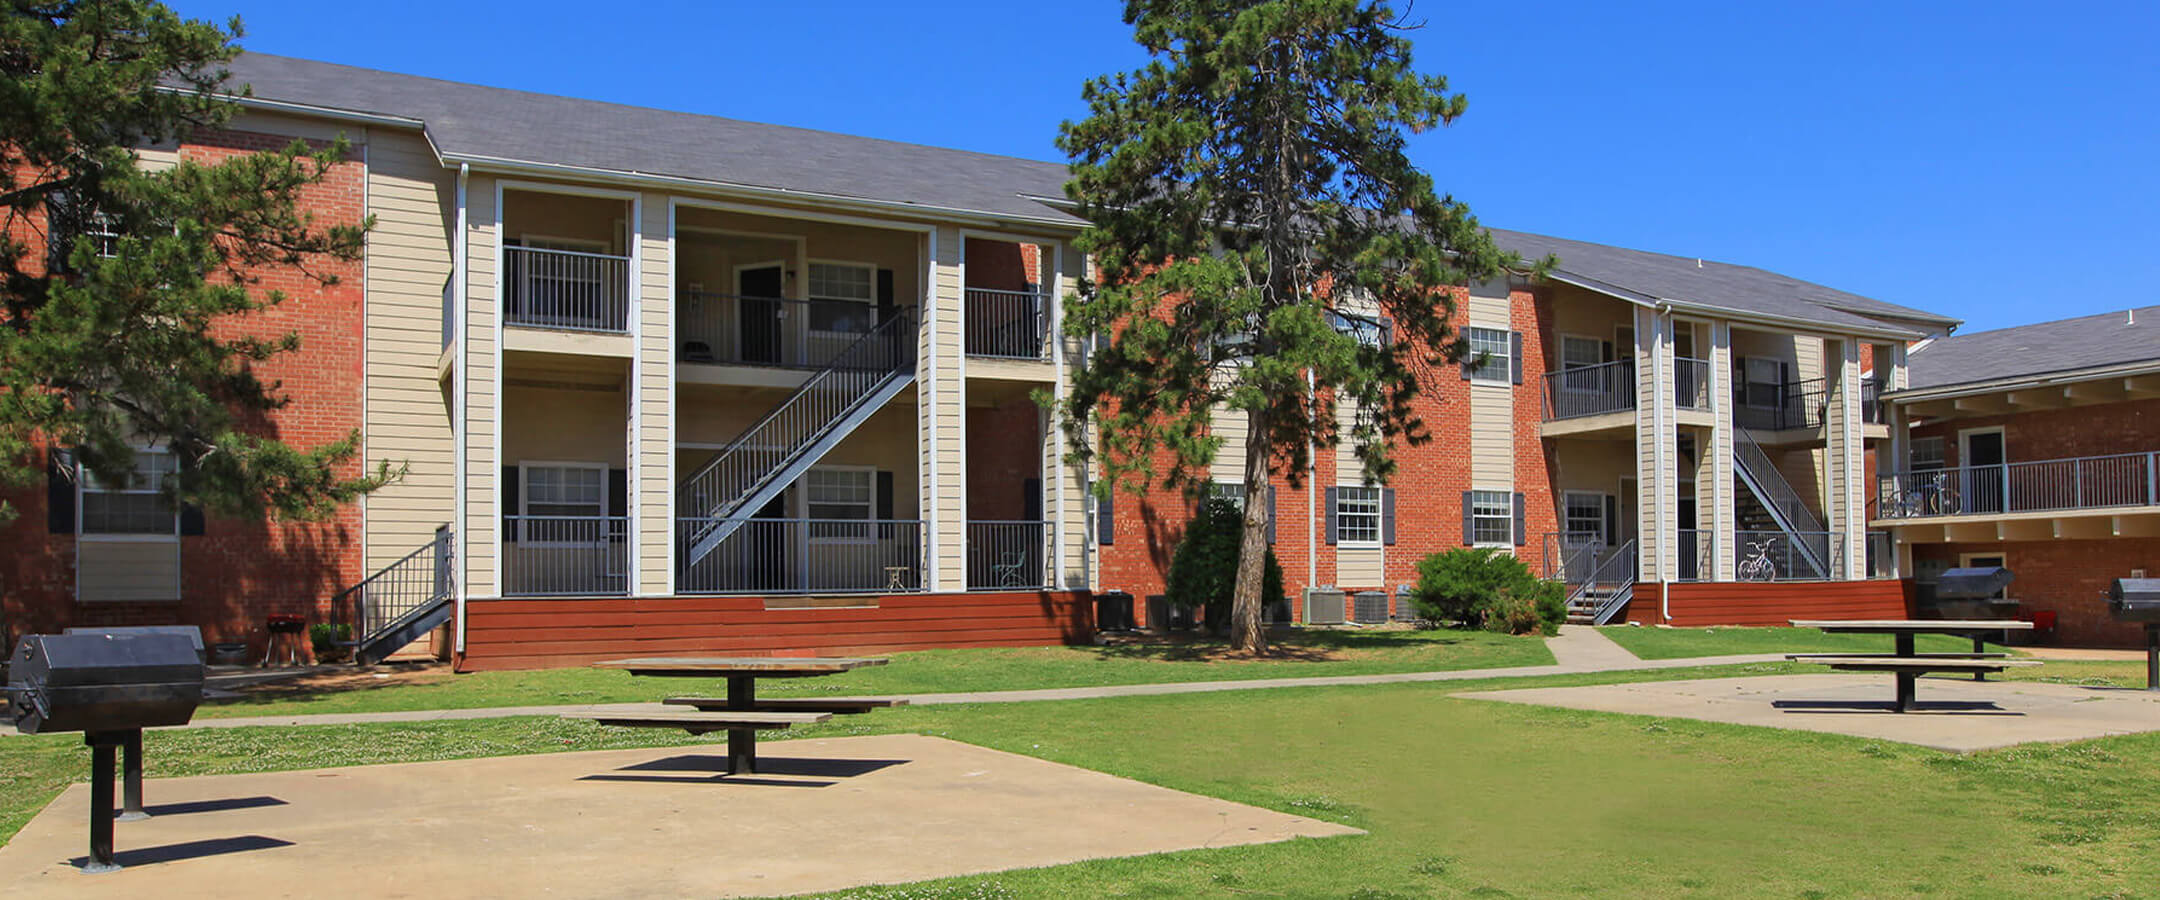 Emerald Greens Apartment Homes In Norman Ok